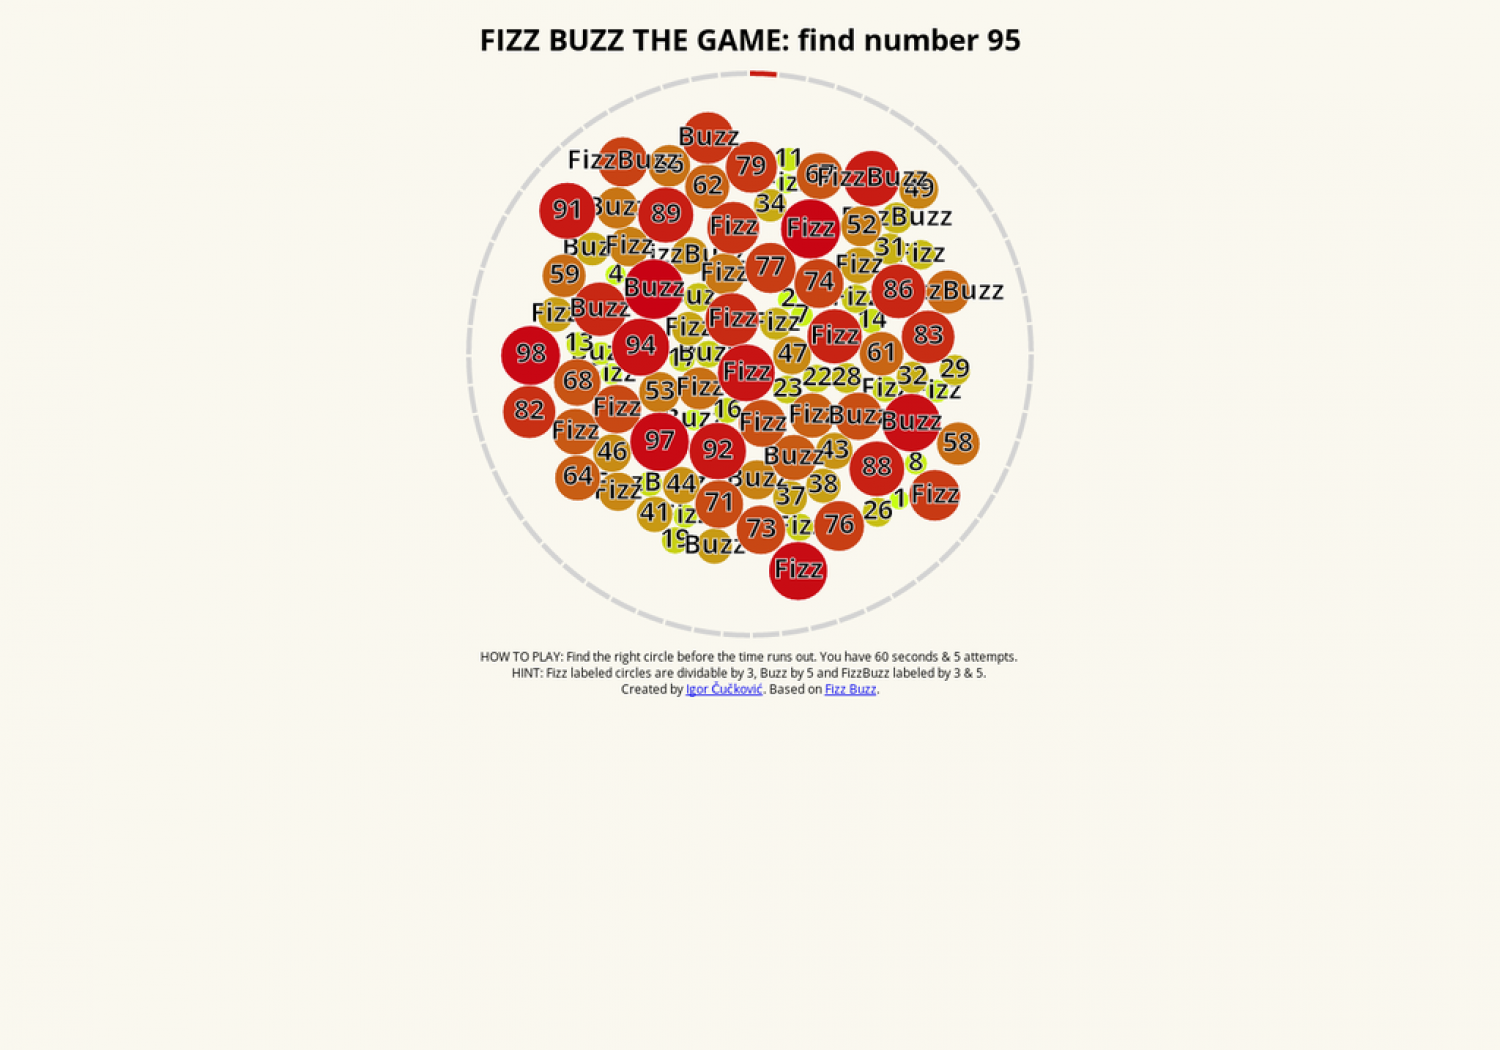 FizzBuzz The Game Infographic